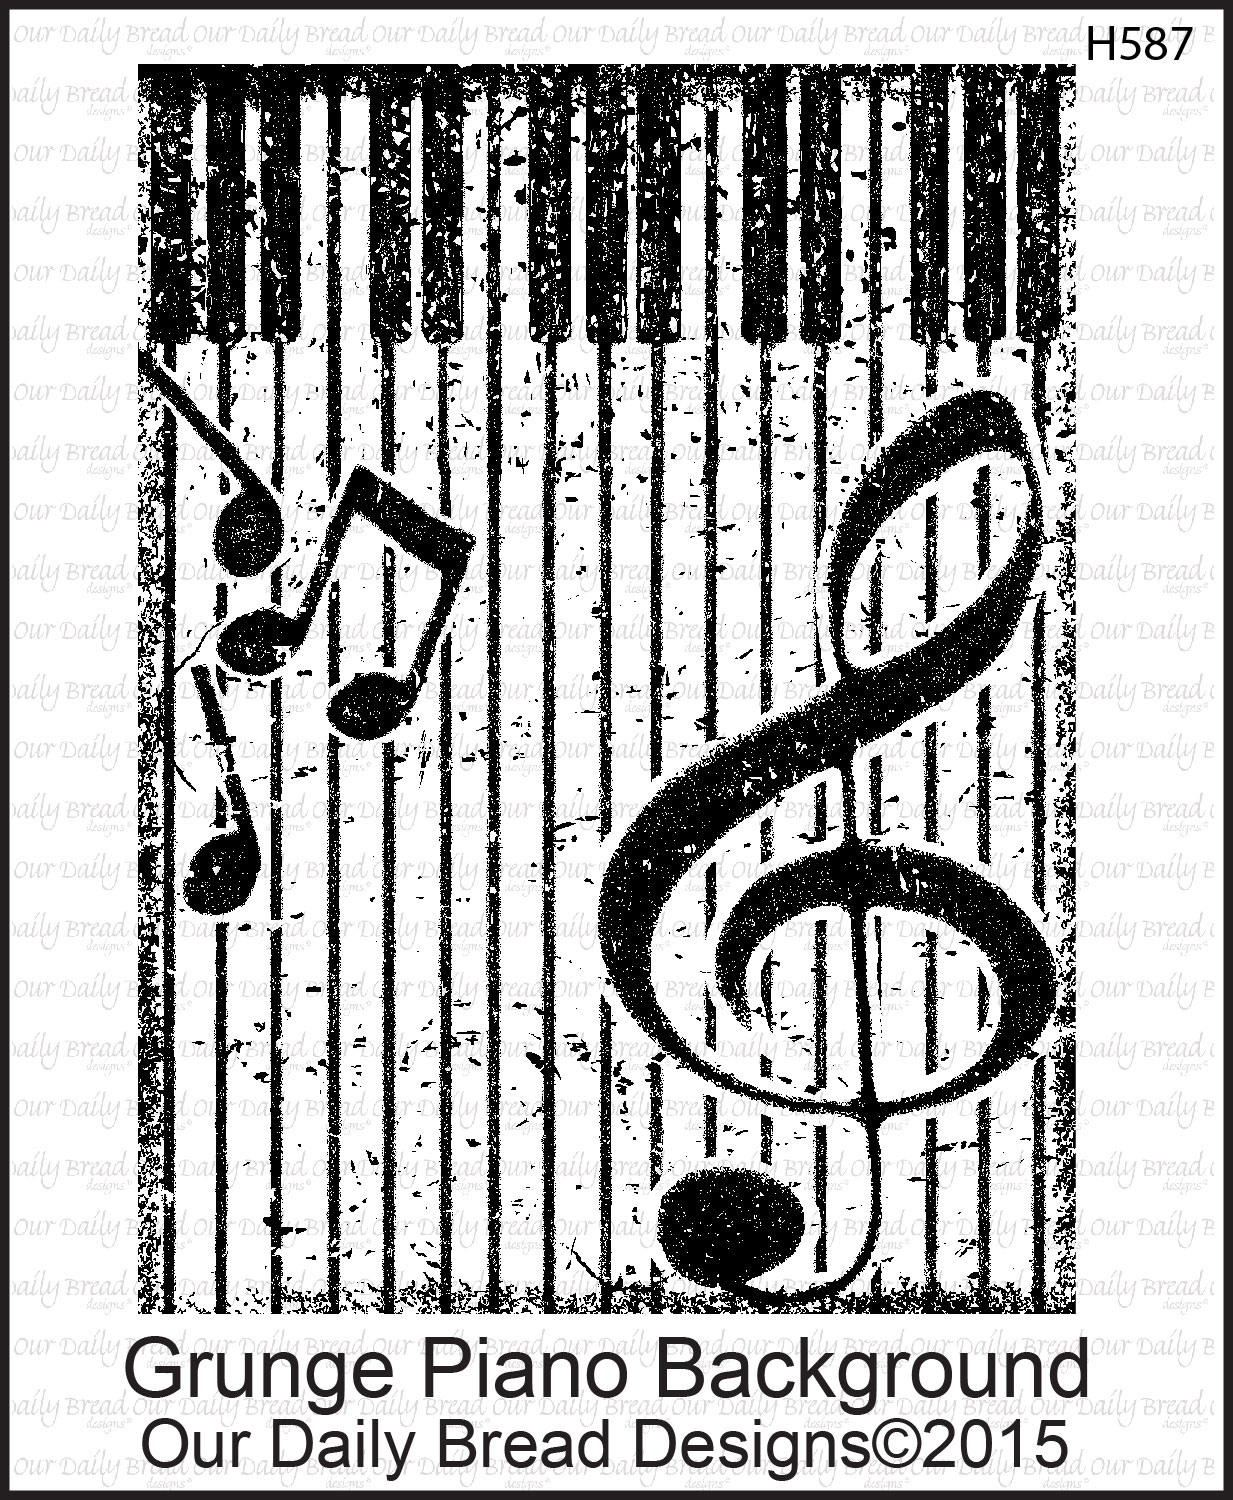 Stamps - Our Daily Bread Designs Grunge Piano Background